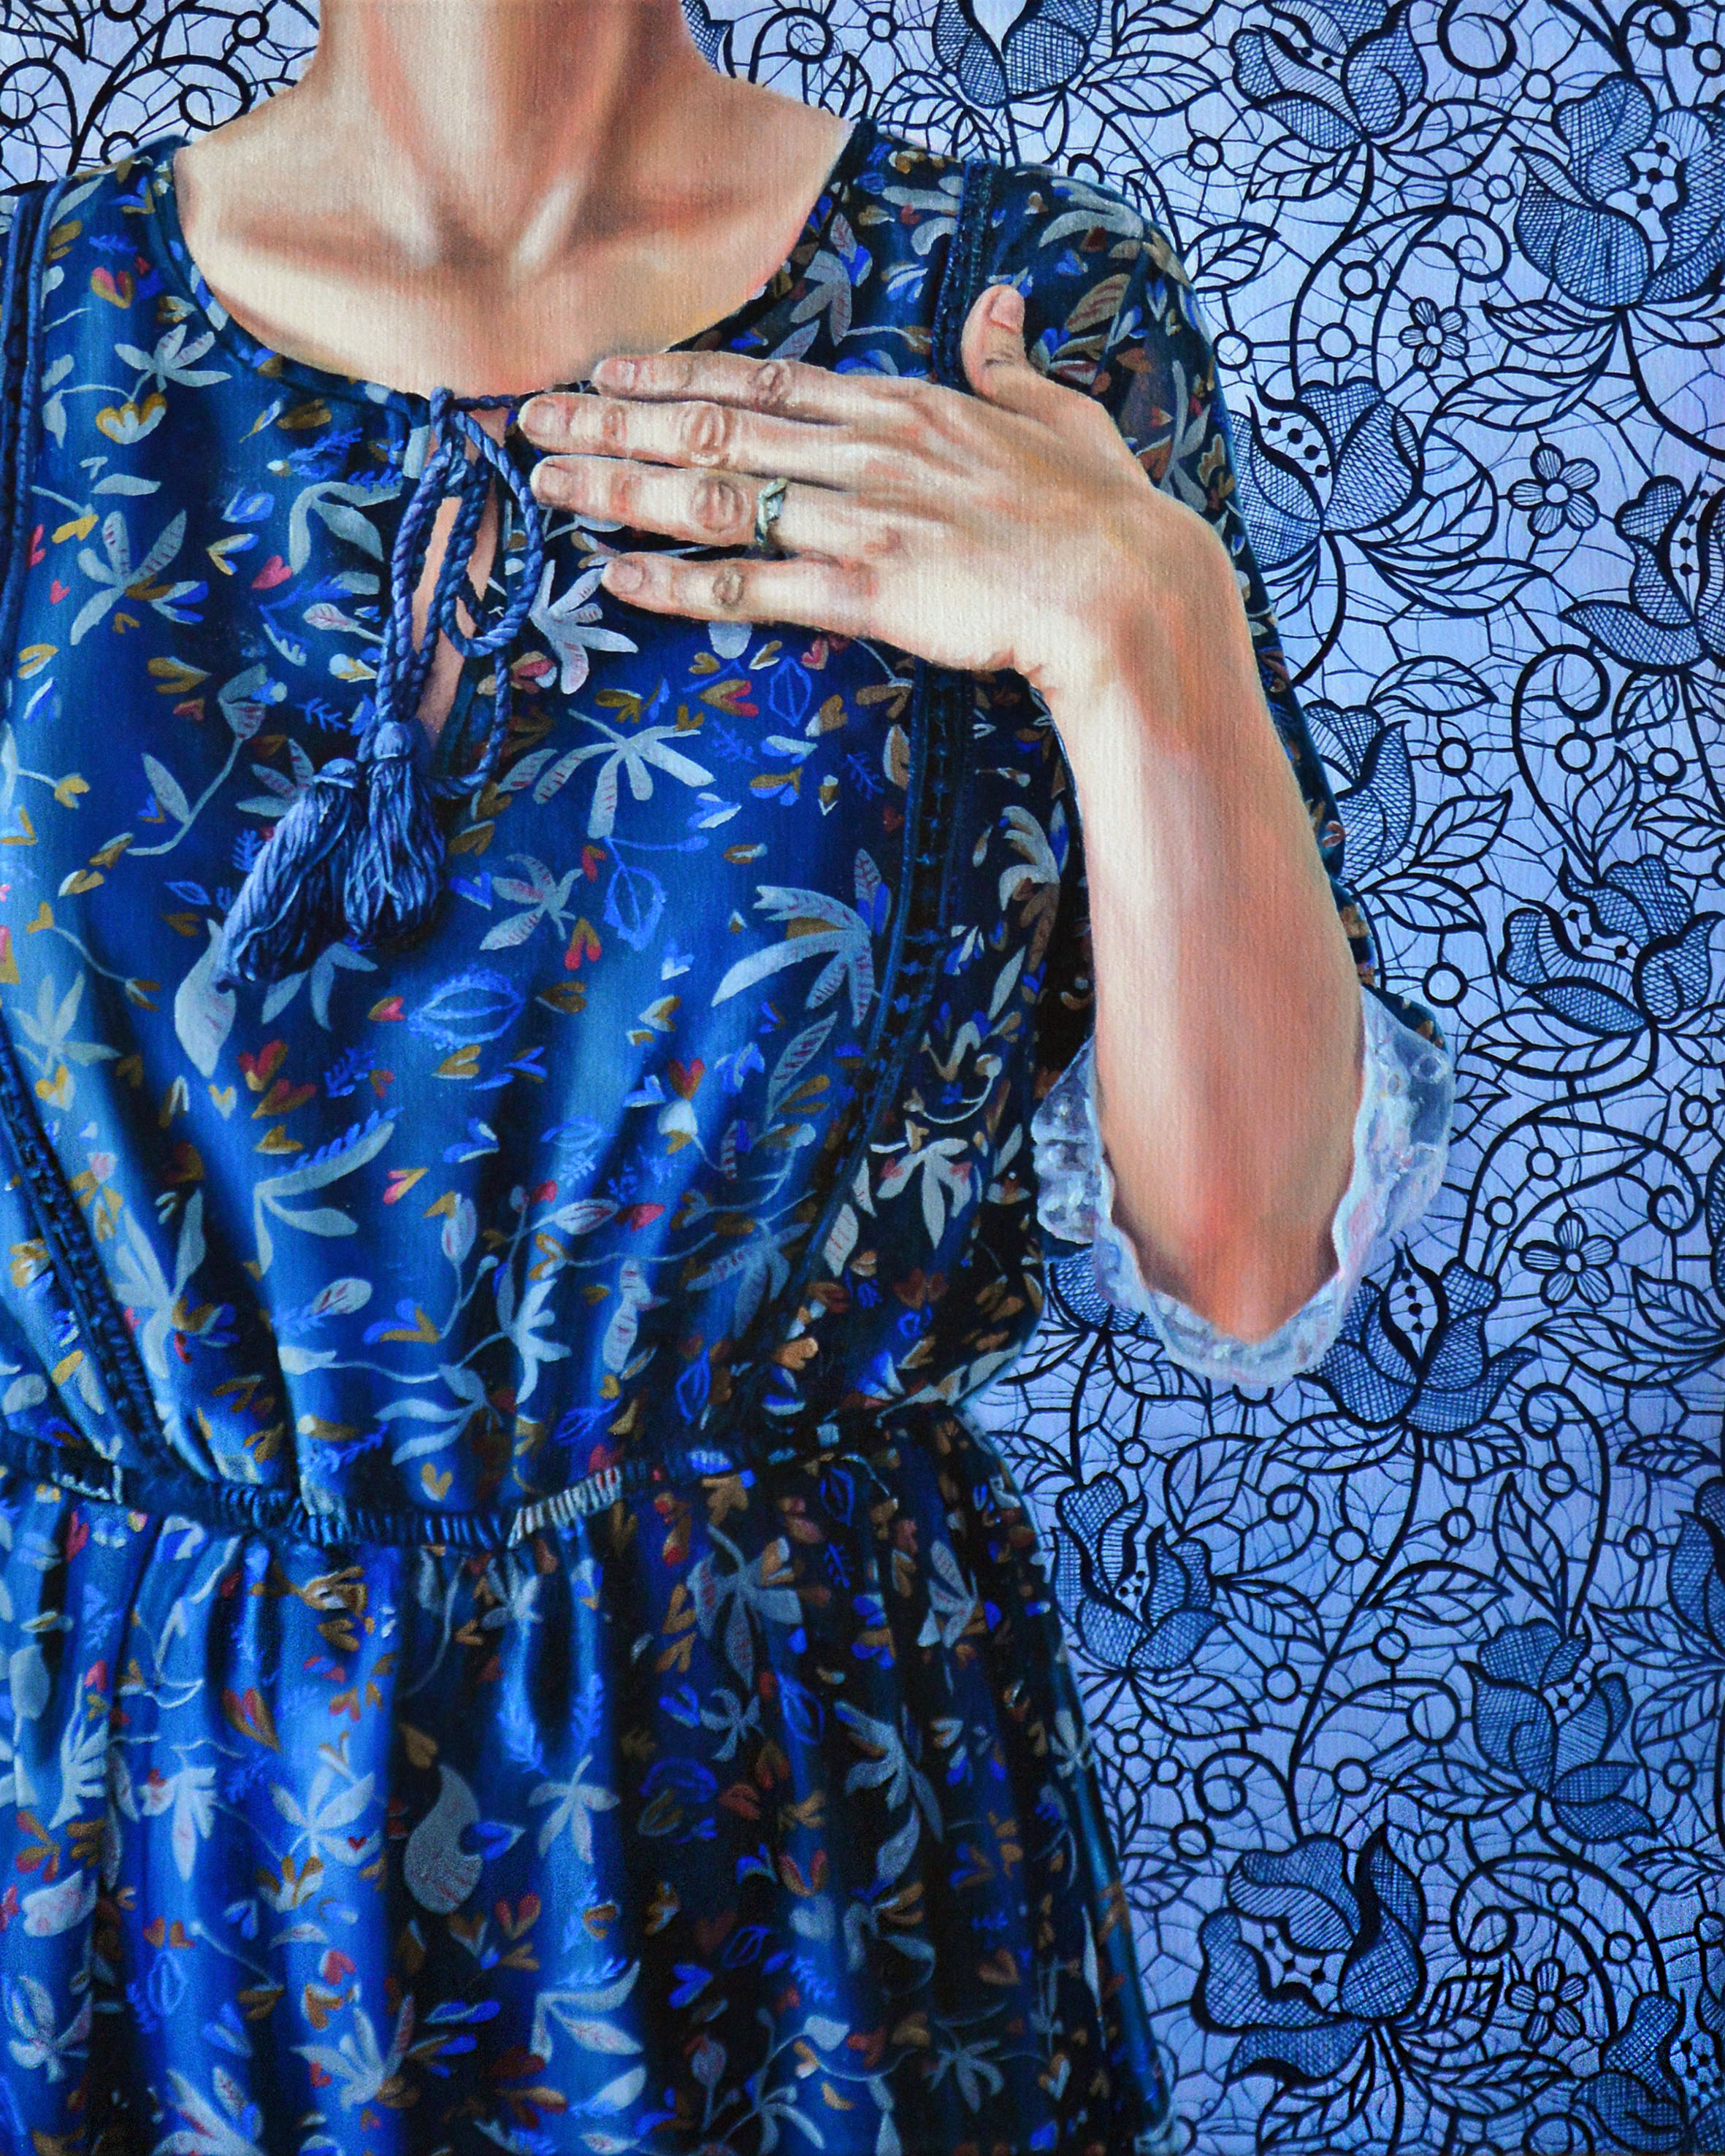 paintings, colorful, figurative, portraiture, bodies, patterns, sexuality, textiles, black, white, cotton-canvas, oil, clothing, contemporary-art, danish, decorative, design, erotic, female, feminist, interior, interior-design, modern, modern-art, nordic, scandinavien, women, Buy original high quality art. Paintings, drawings, limited edition prints & posters by talented artists.